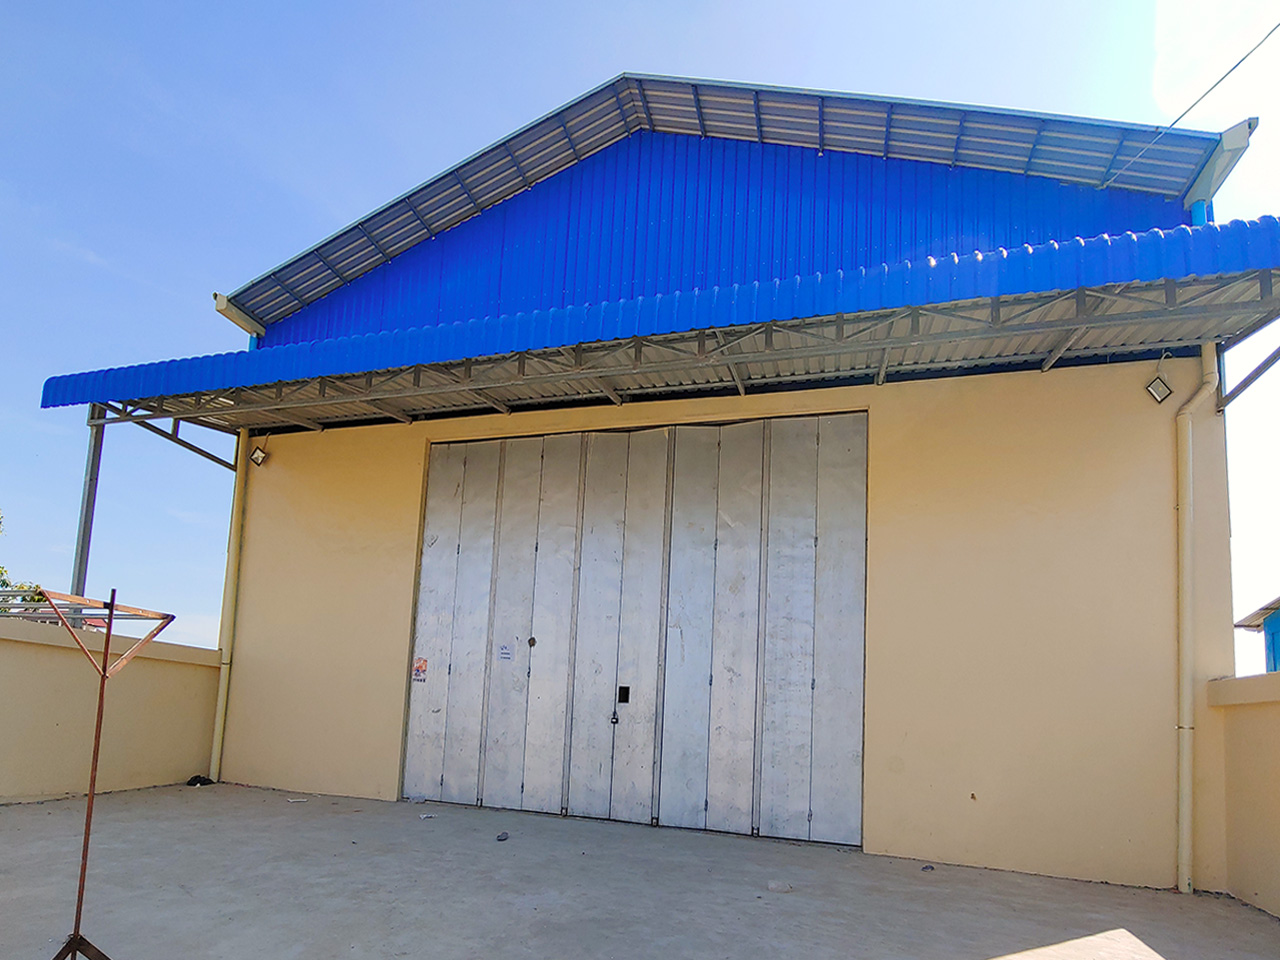 923 Sq.m warehouse for rent in Sen Sok area